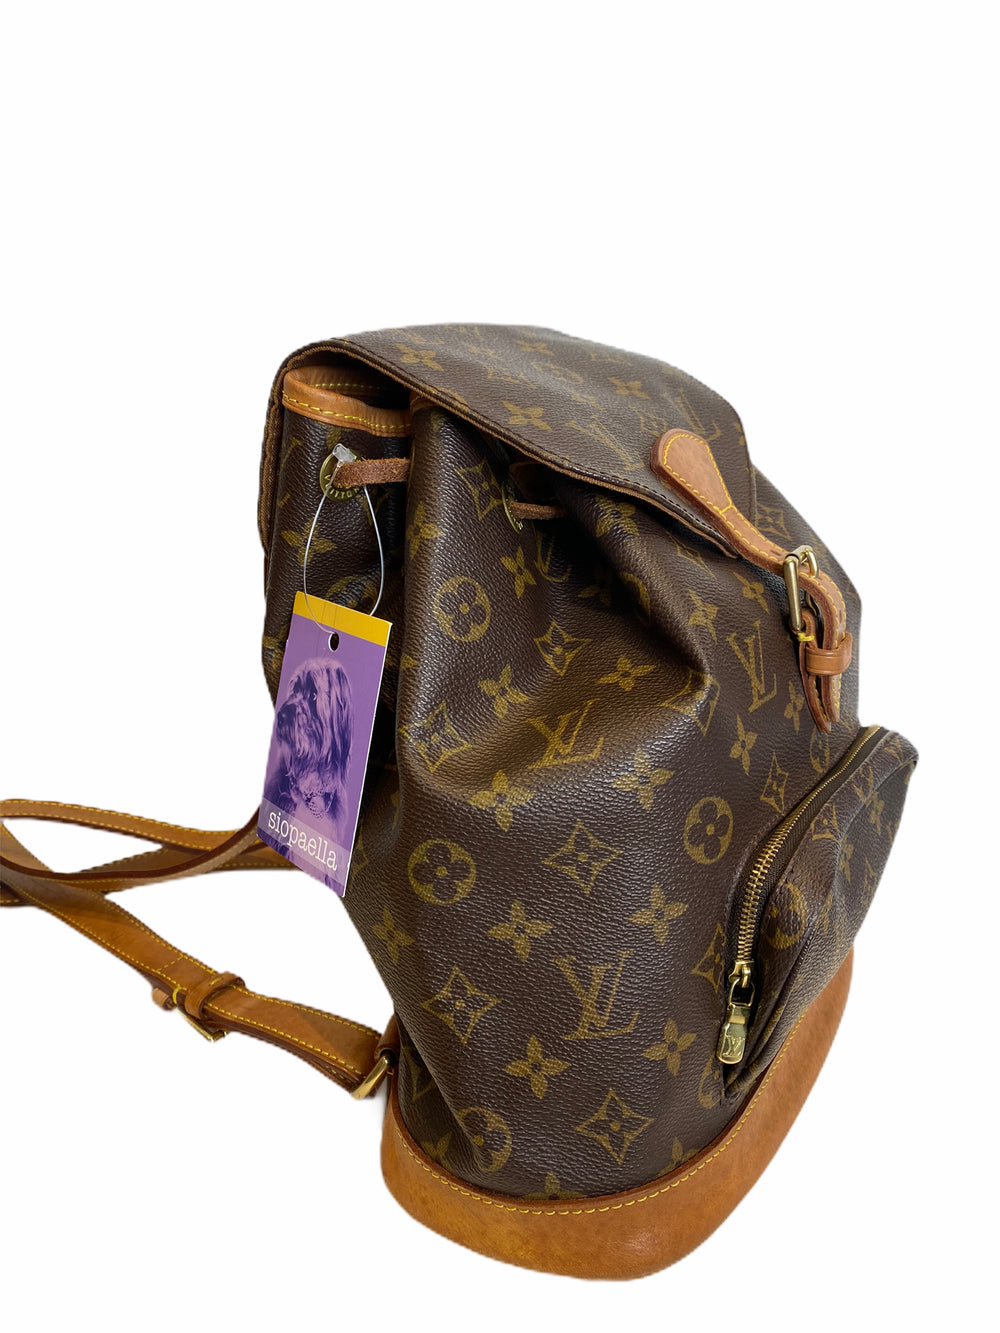 Louis Vuitton Vintage Montsouris Backpack - as seen on Instagram - Siopaella Designer Exchange